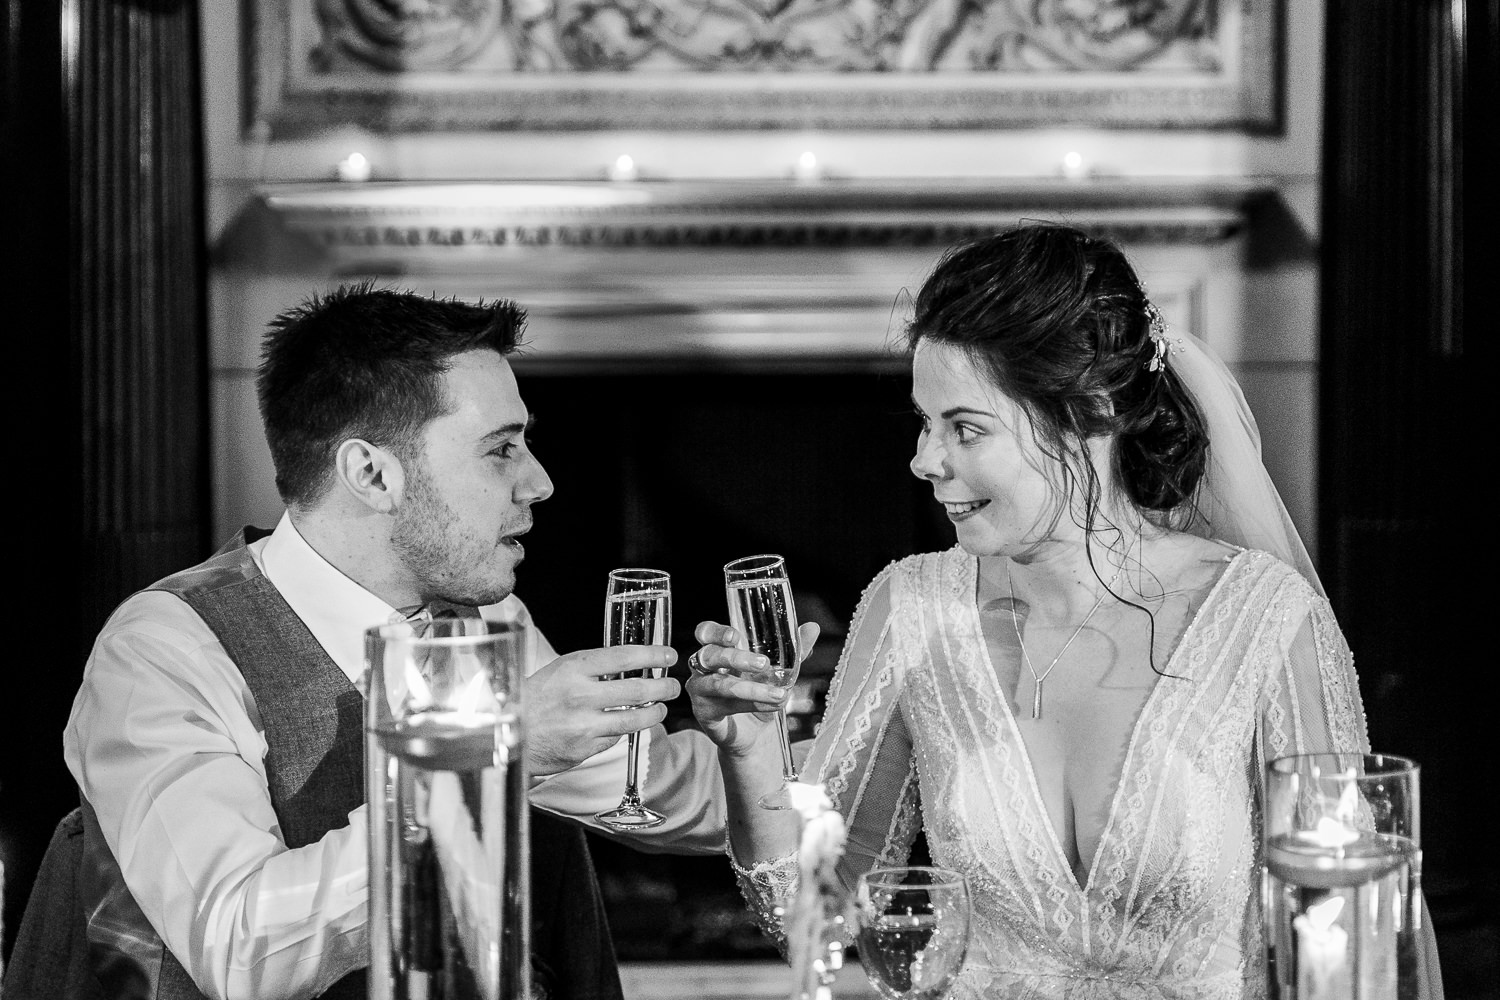 Bride and groom toasting together